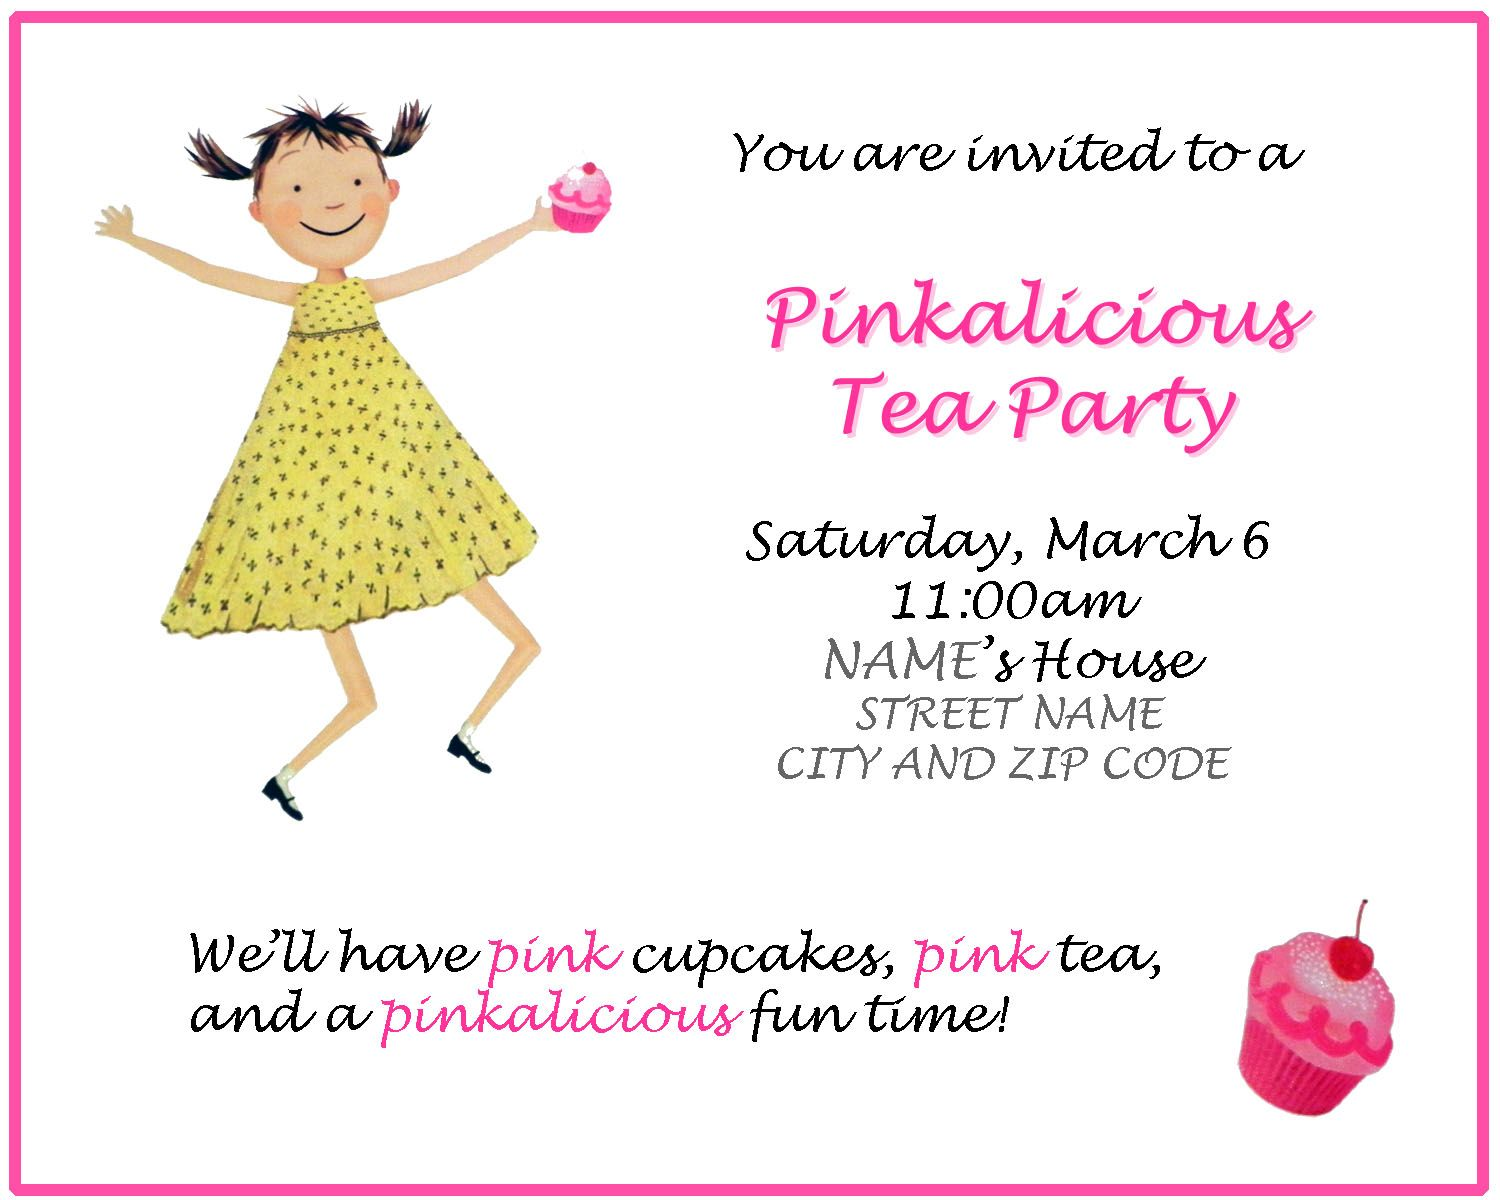 Pinkalicious Party Invitations invitation for birthday party – Pinkalicious Party Invitations